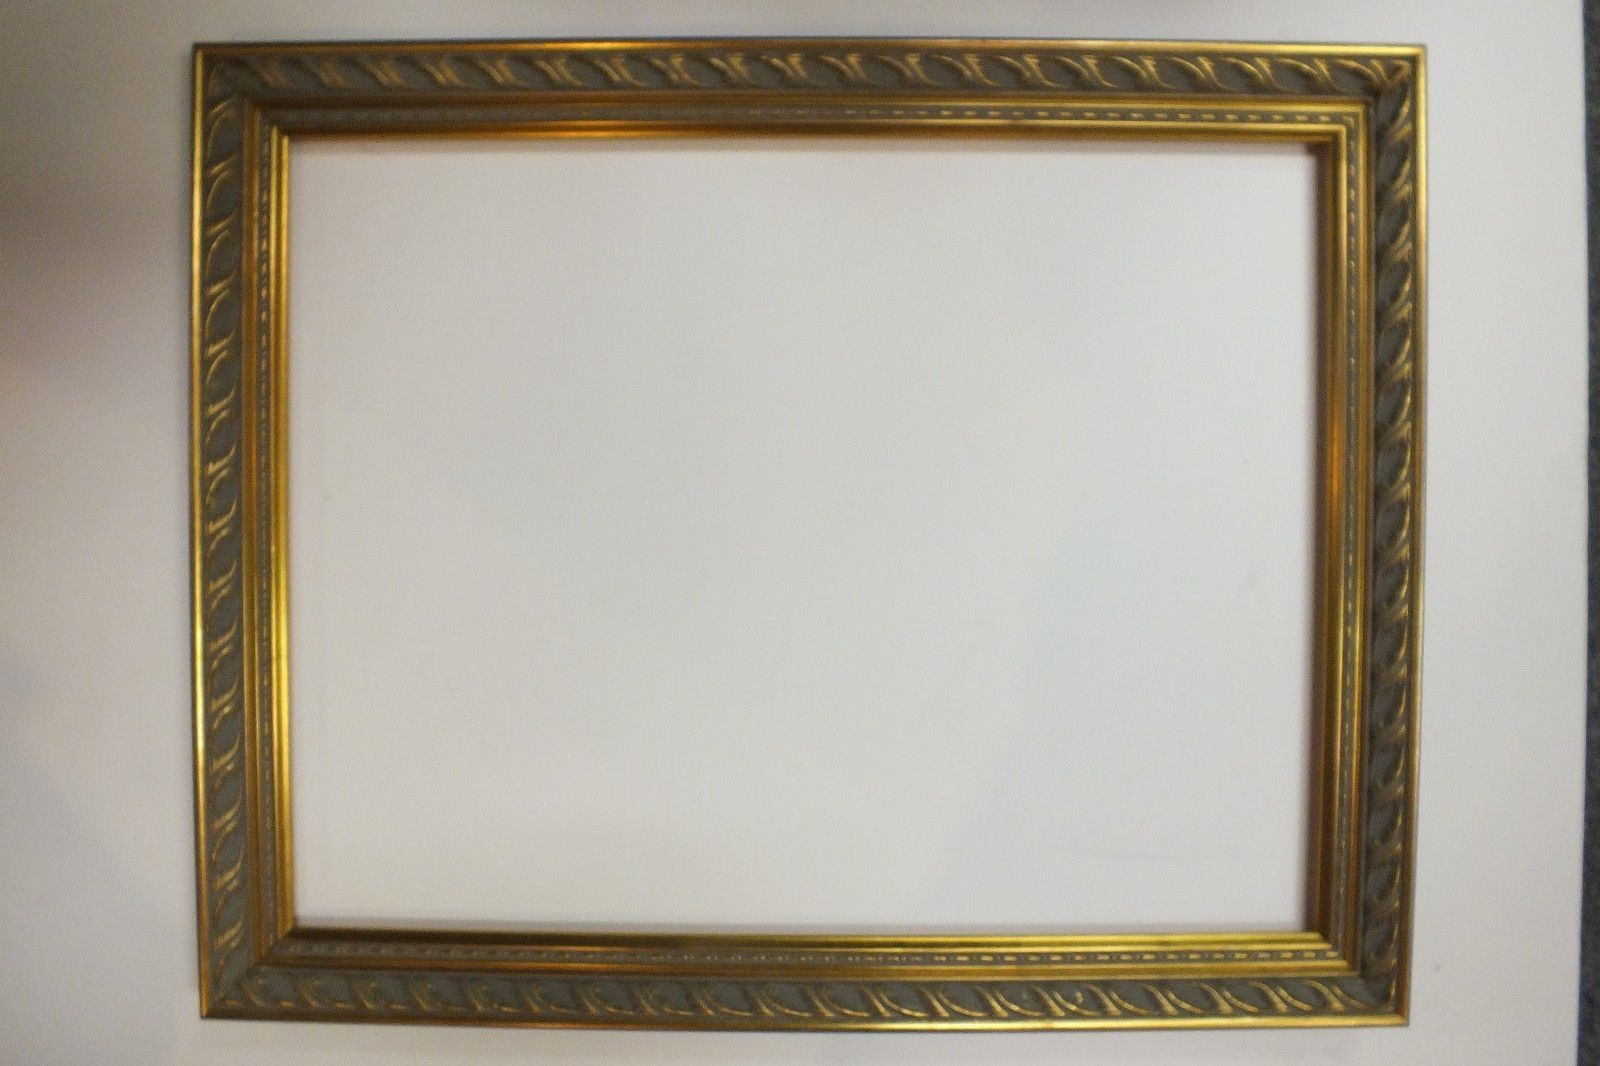 16 x 20 Ornate Gold leaf Wood Picture Frame Sale Free Shipping ...